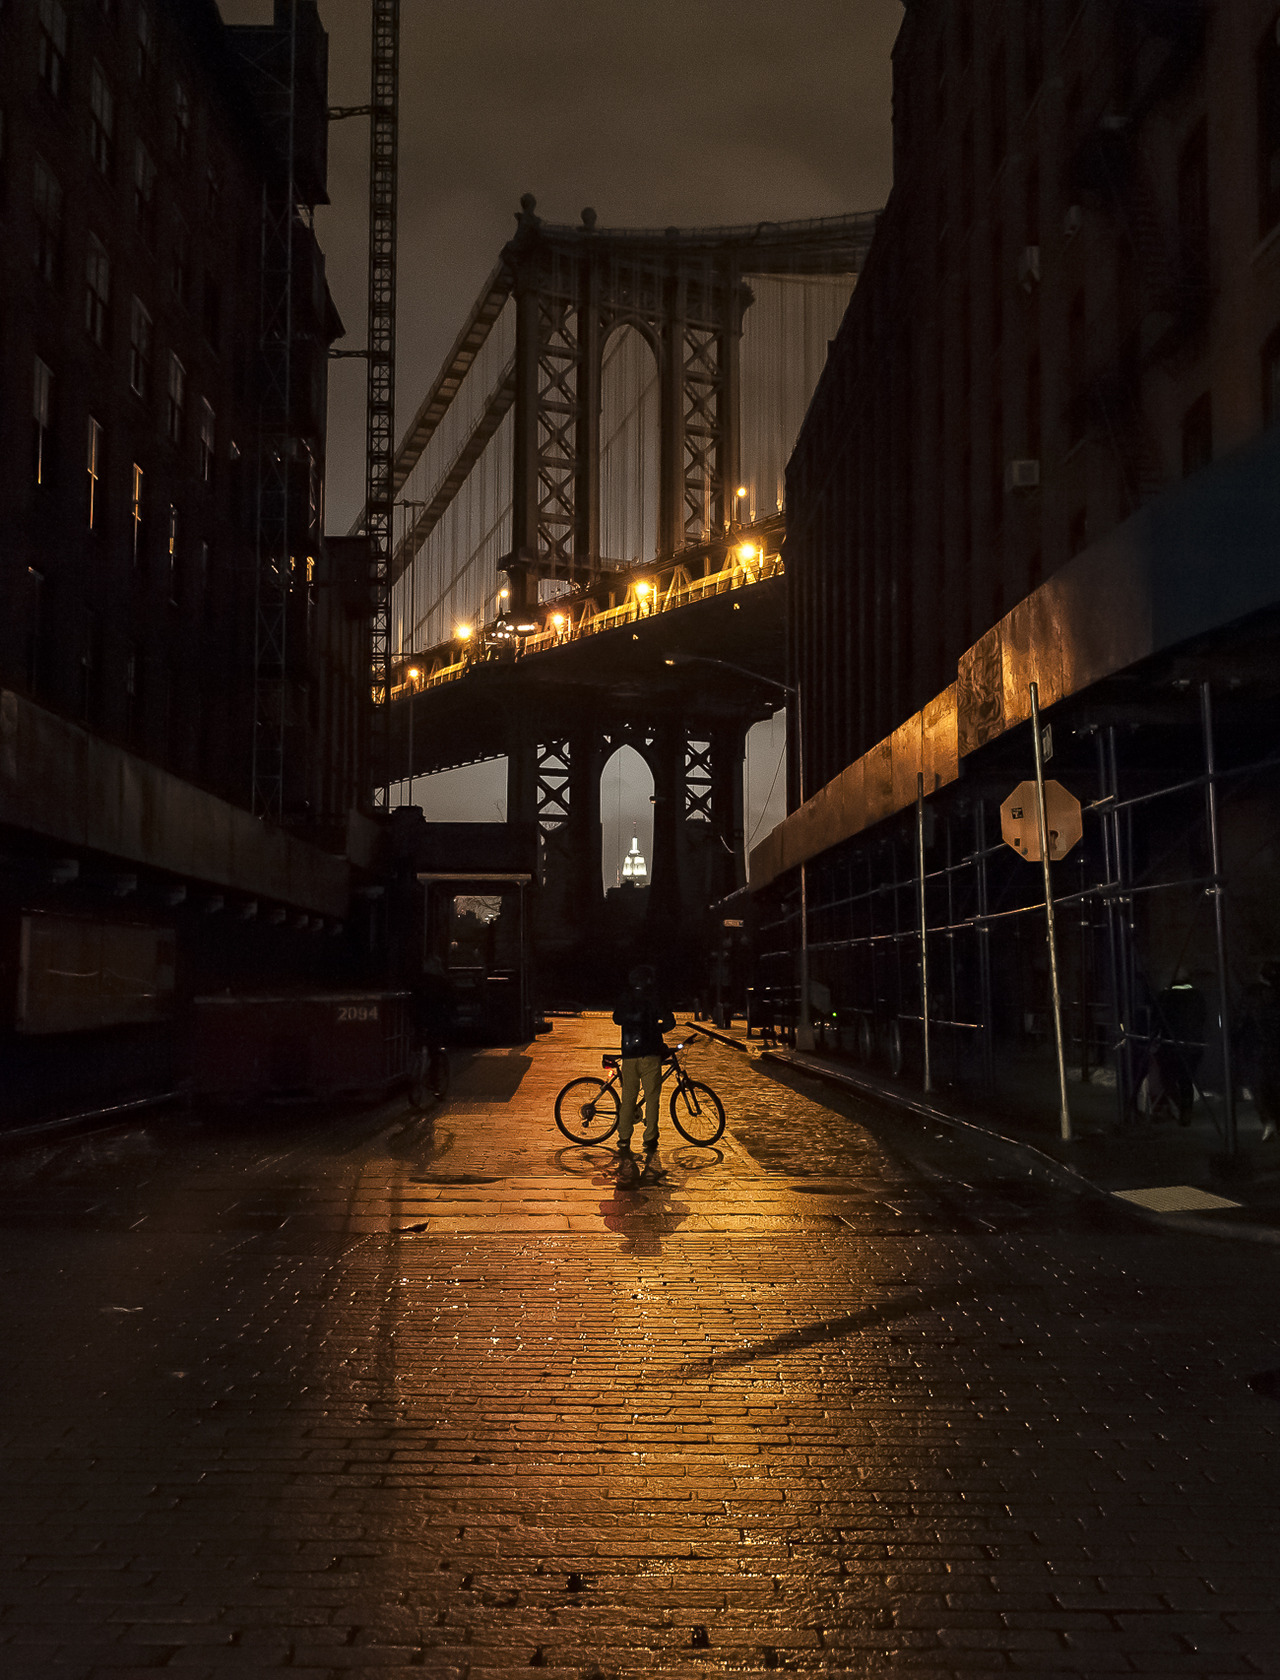 Night Photography during New York City Post-Sandy Blackout